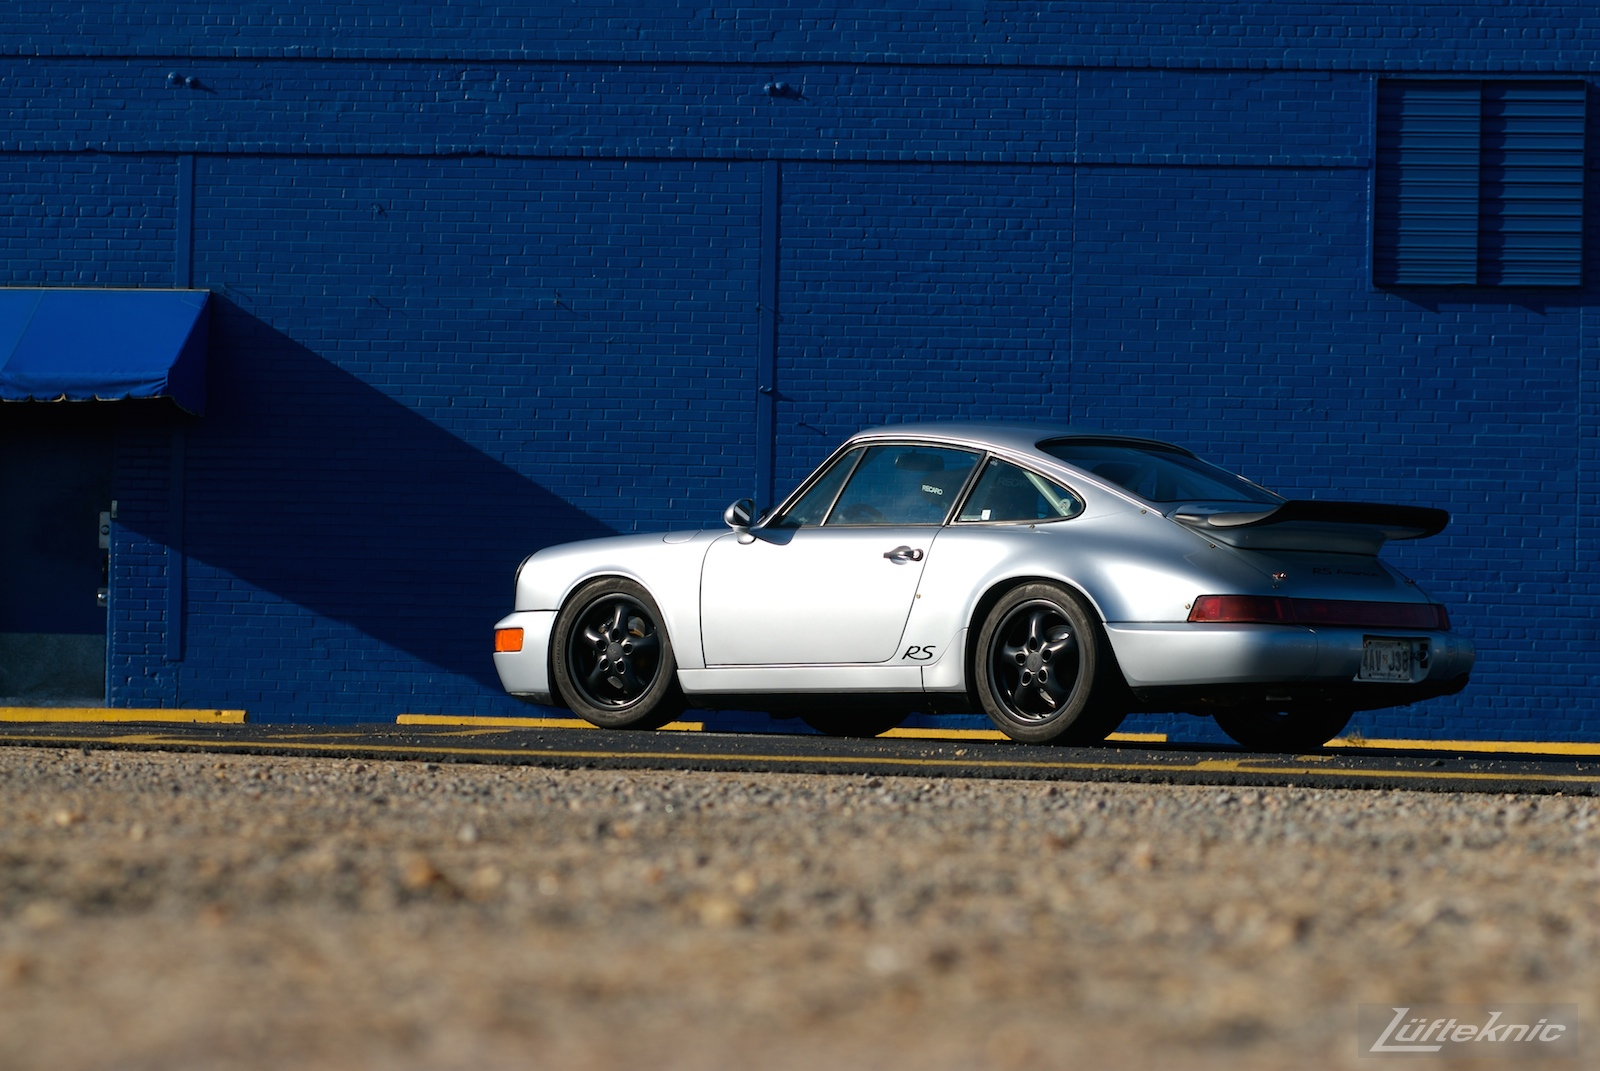 A Big blue wall with a beautiful silver Porsche 911 RS America